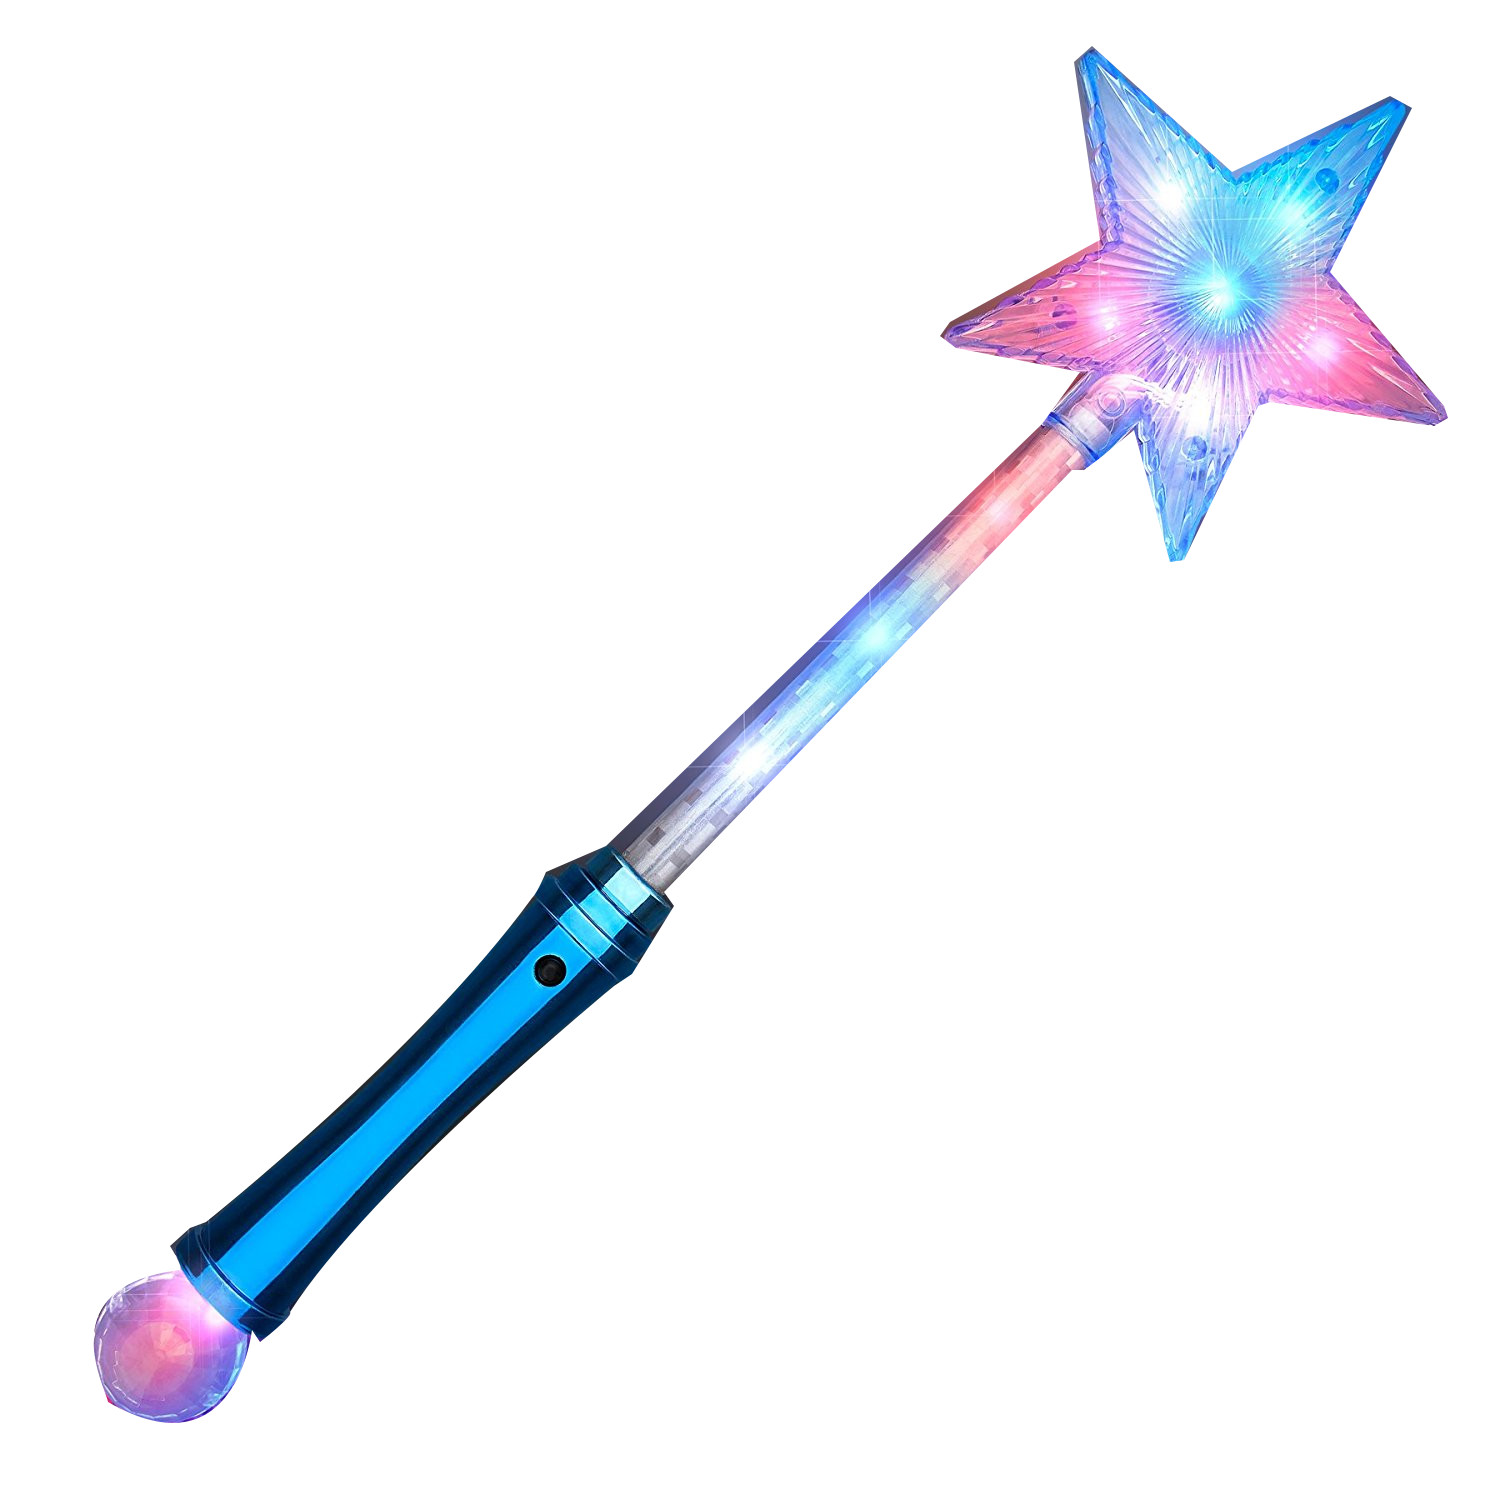 Crystal Star Wand With Red White And Blue Leds Magic